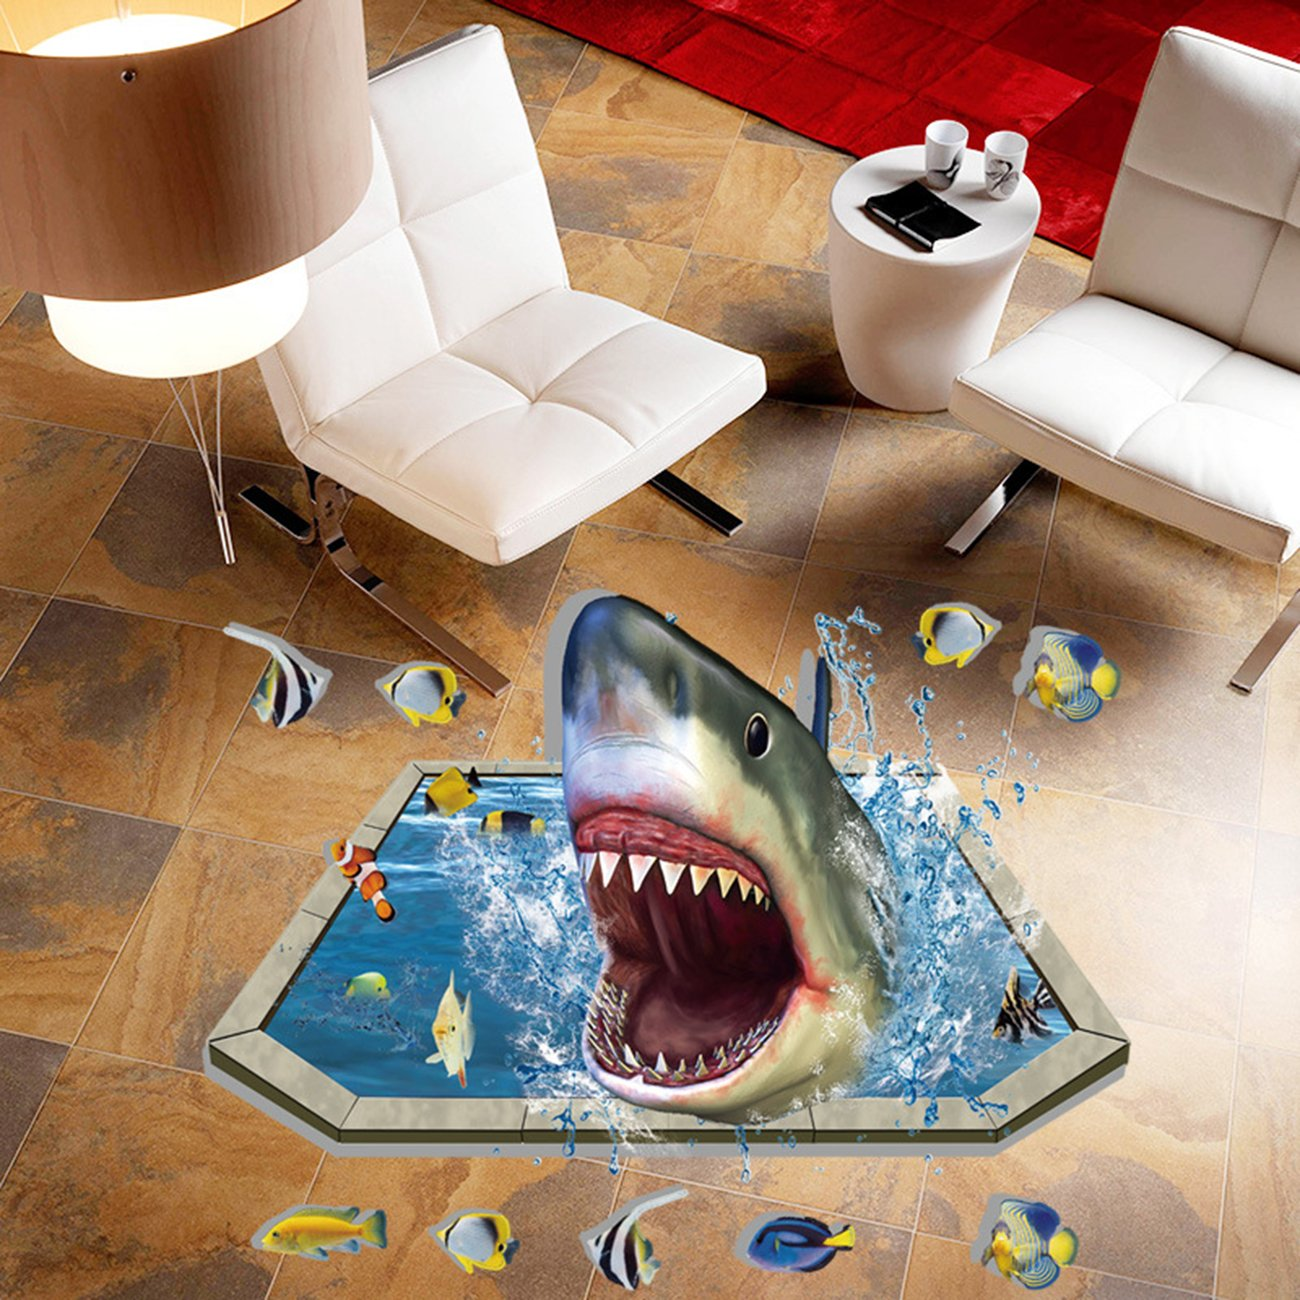 THEE 3D Floor Wall Sticker Removable Mural Decals Ocean Sky Scenery Living Room Decors